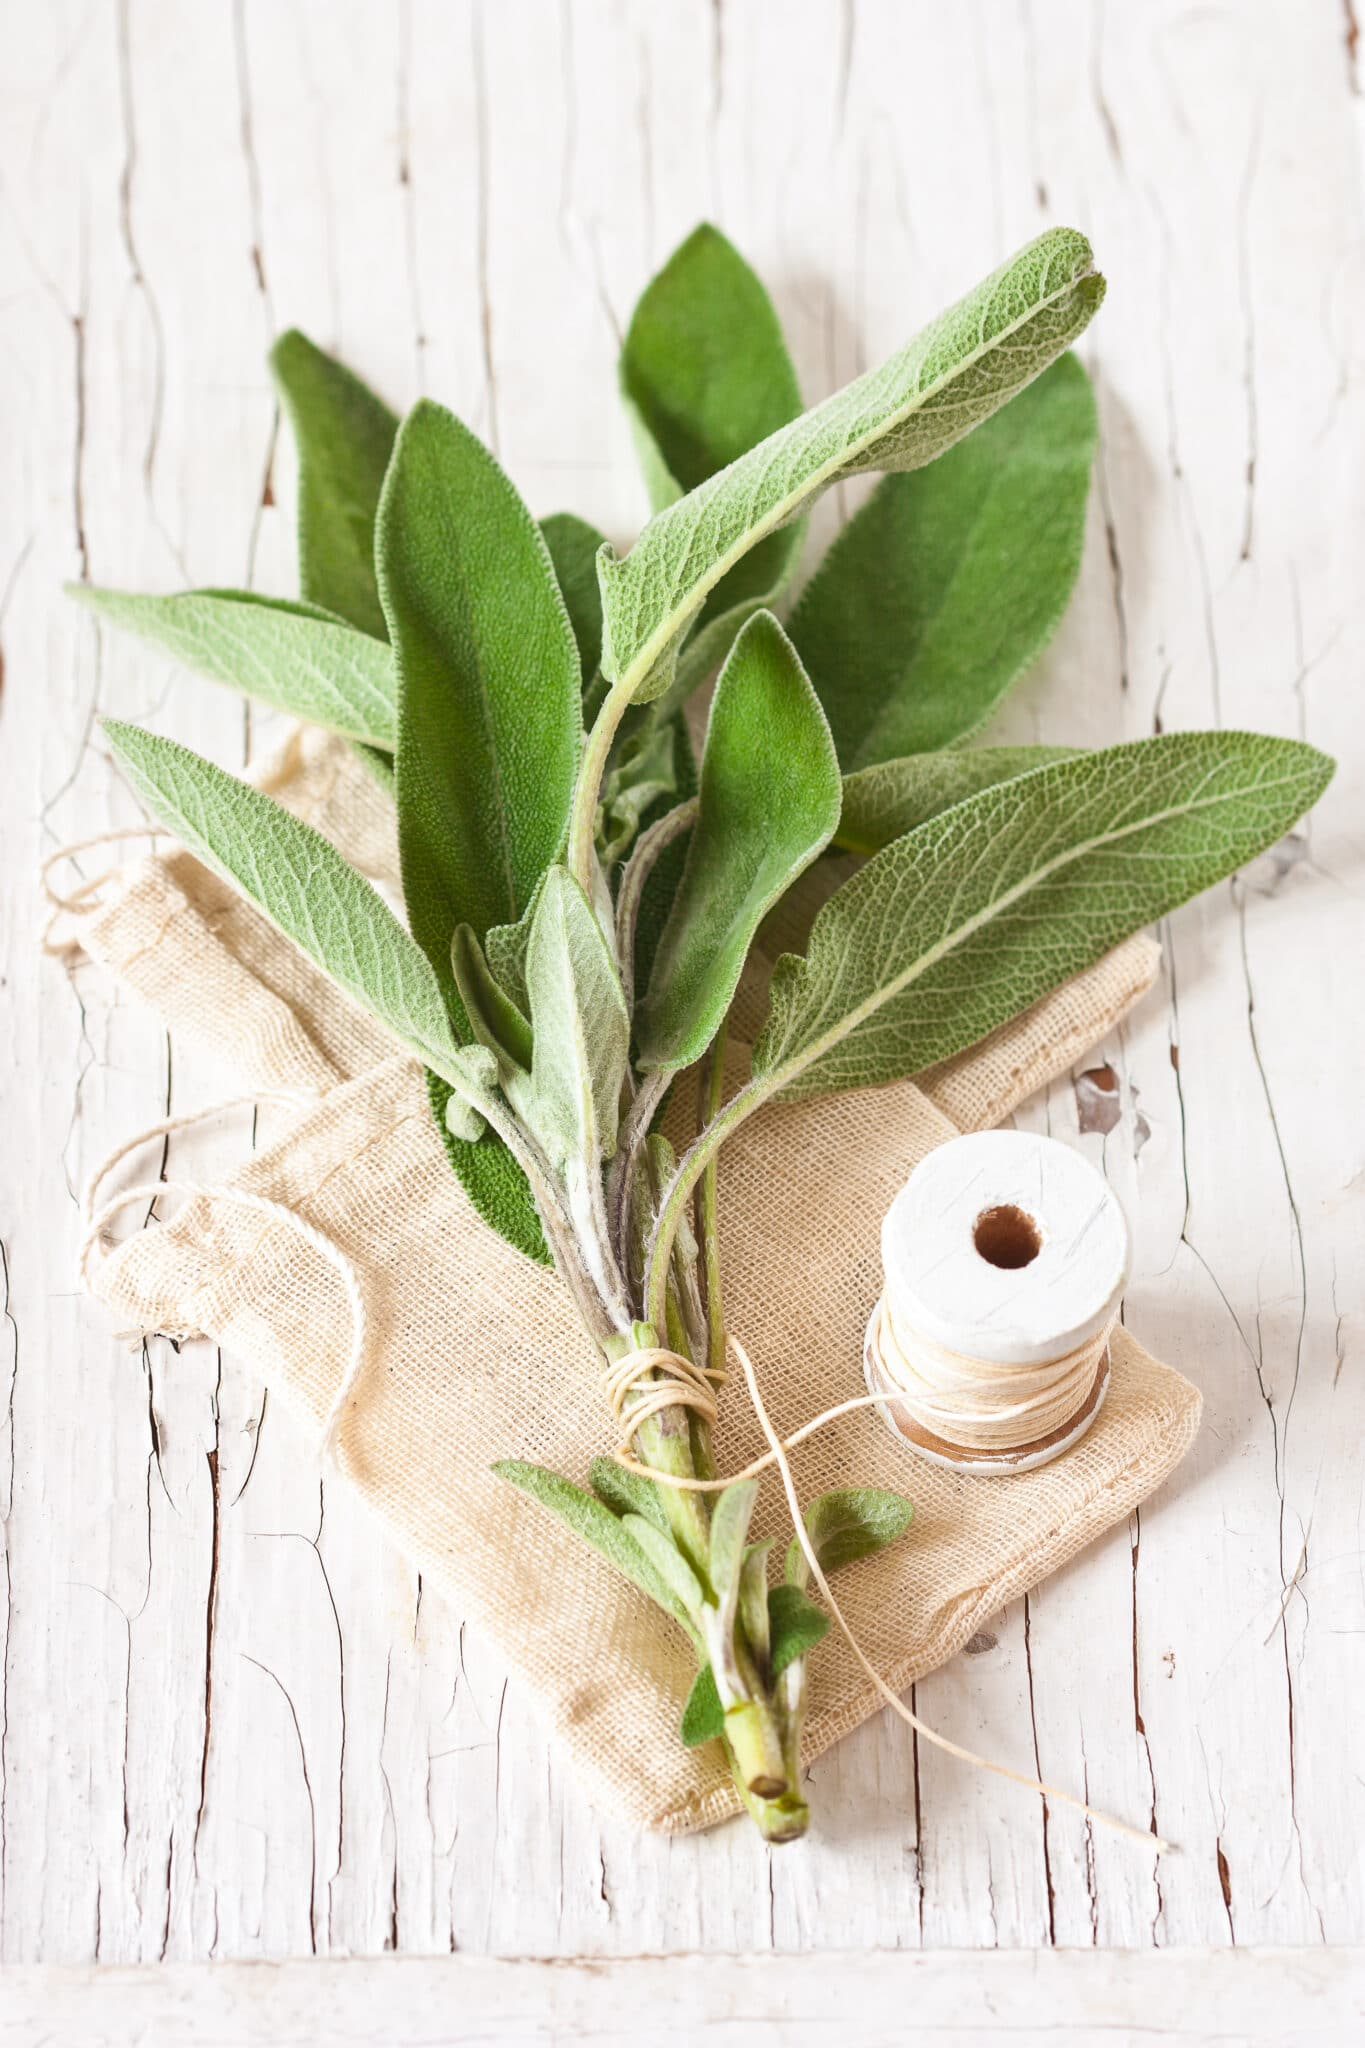 A bundle of fresh sage leaves being tied for drying.